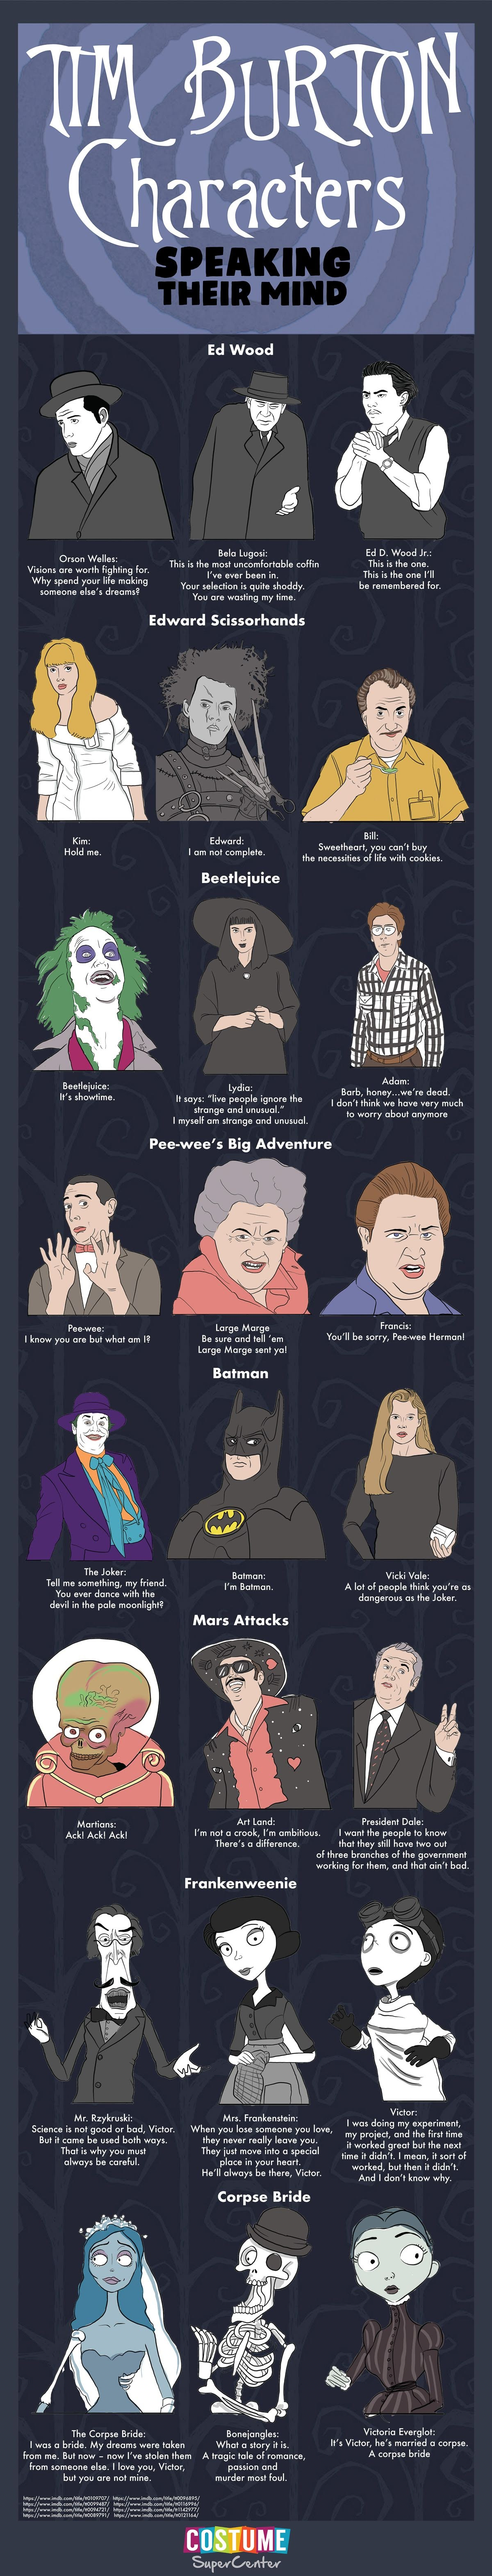 Tim Burton Characters Speaking Their Mind #Infographic